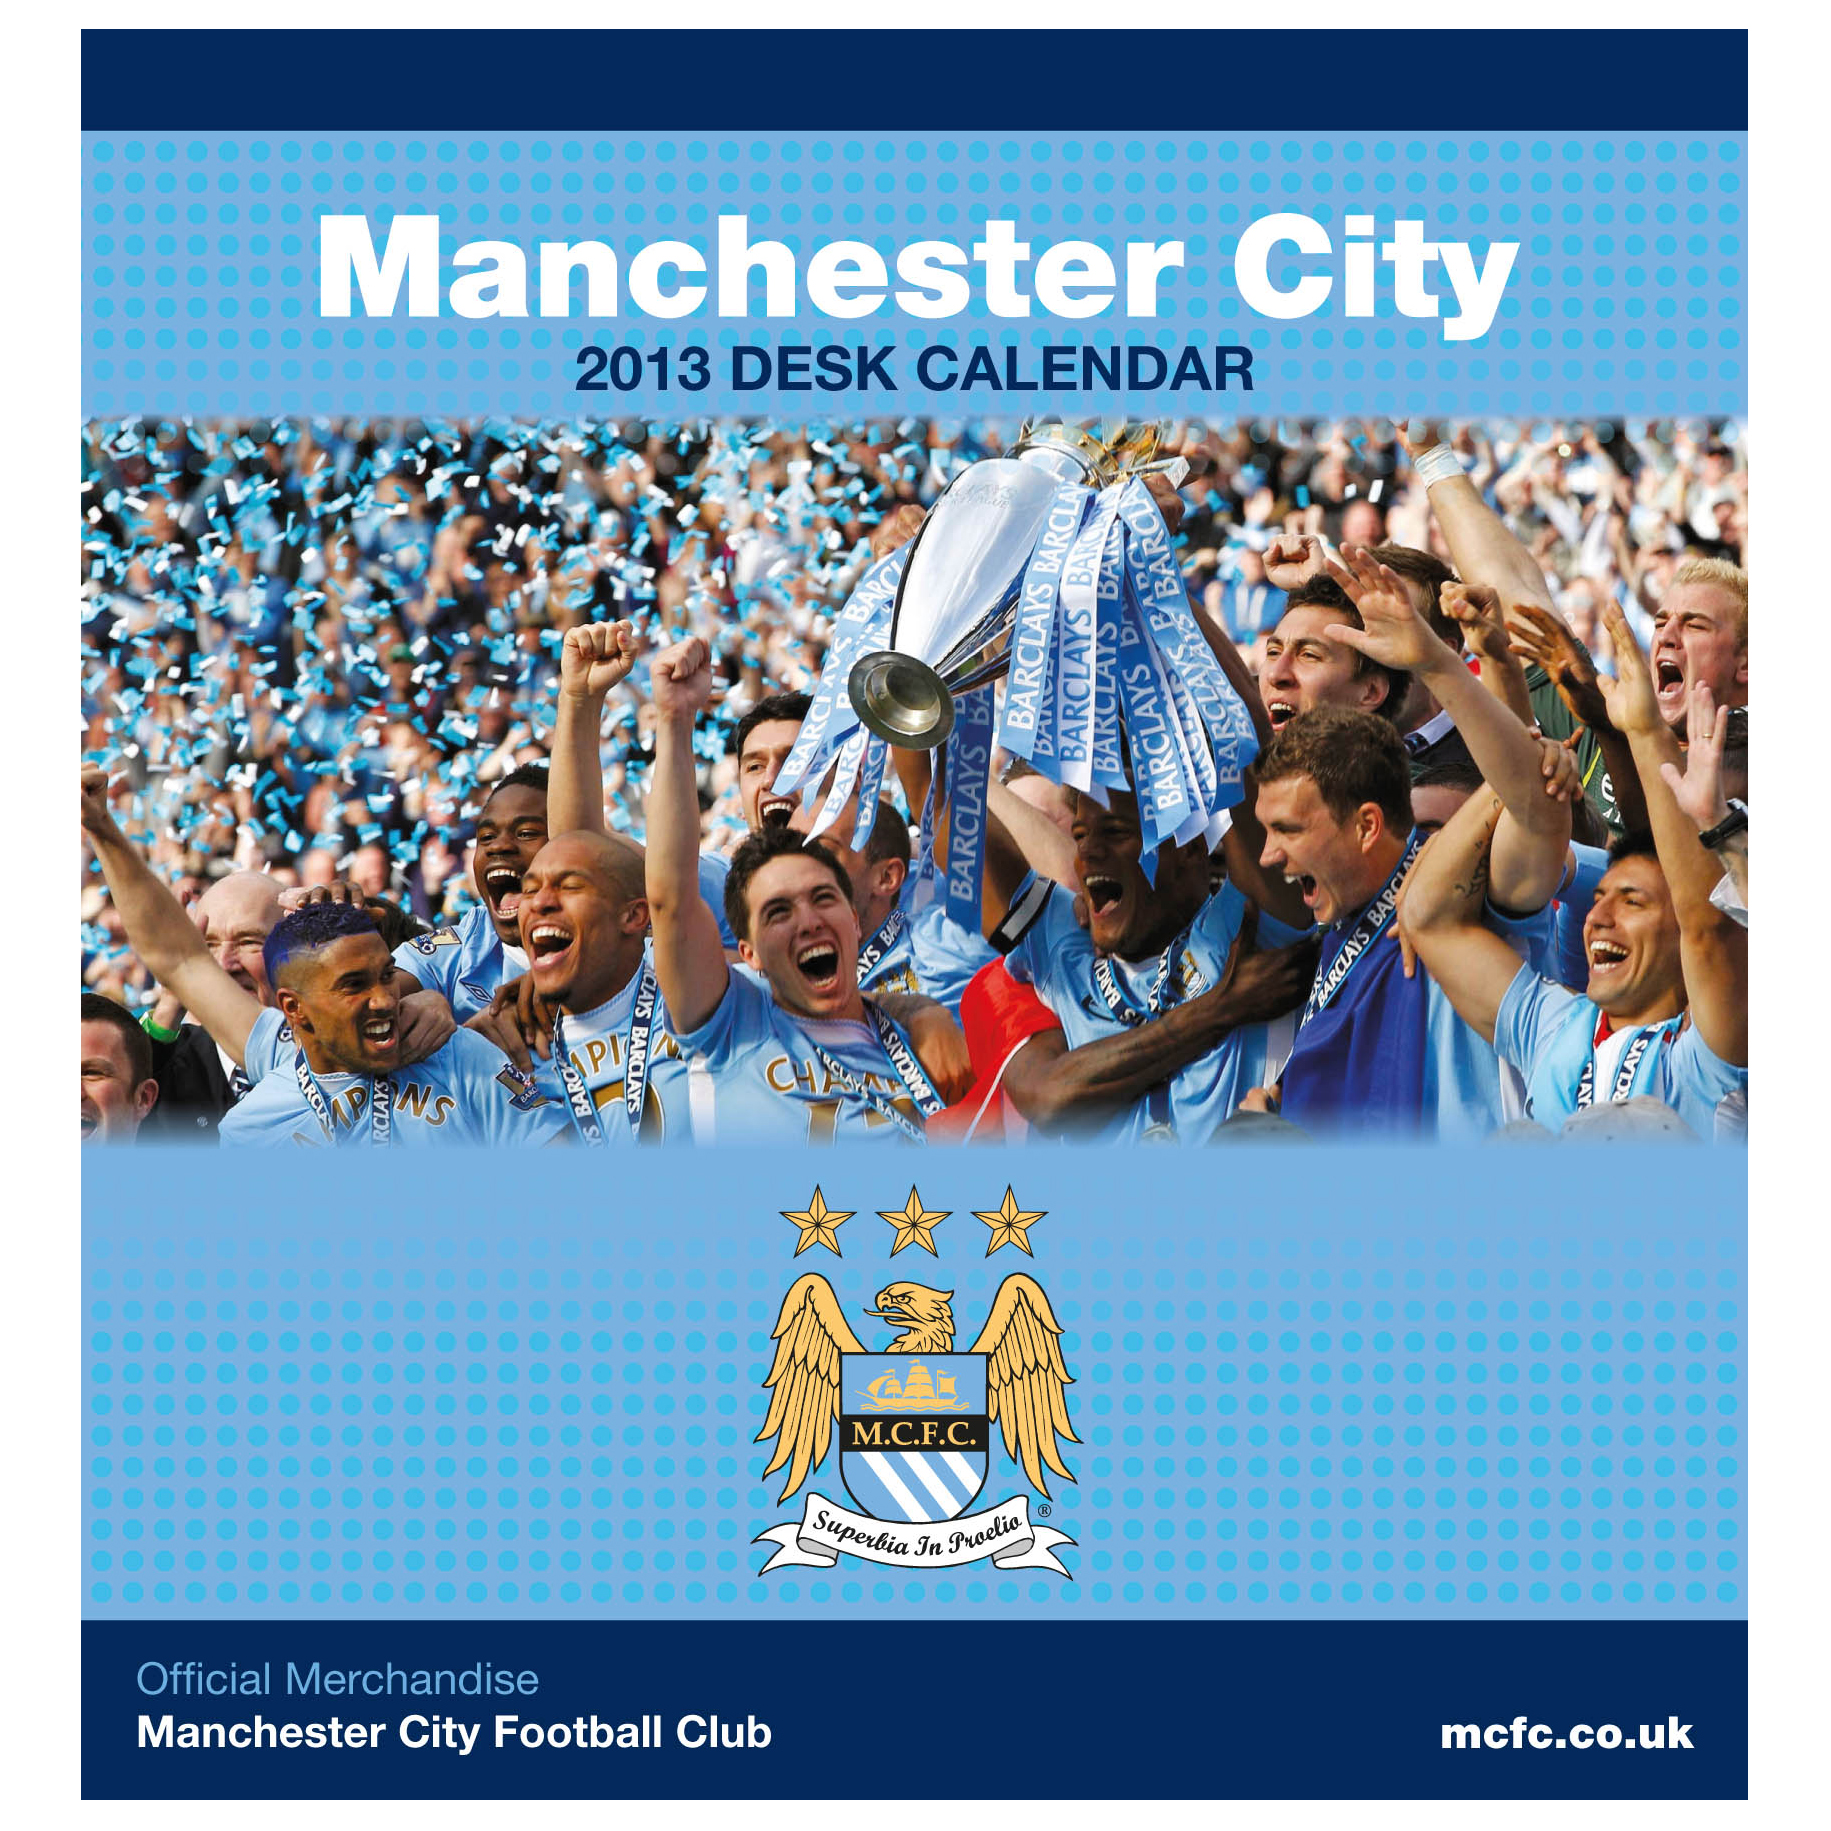 Manchester City Desk Calendar 2013